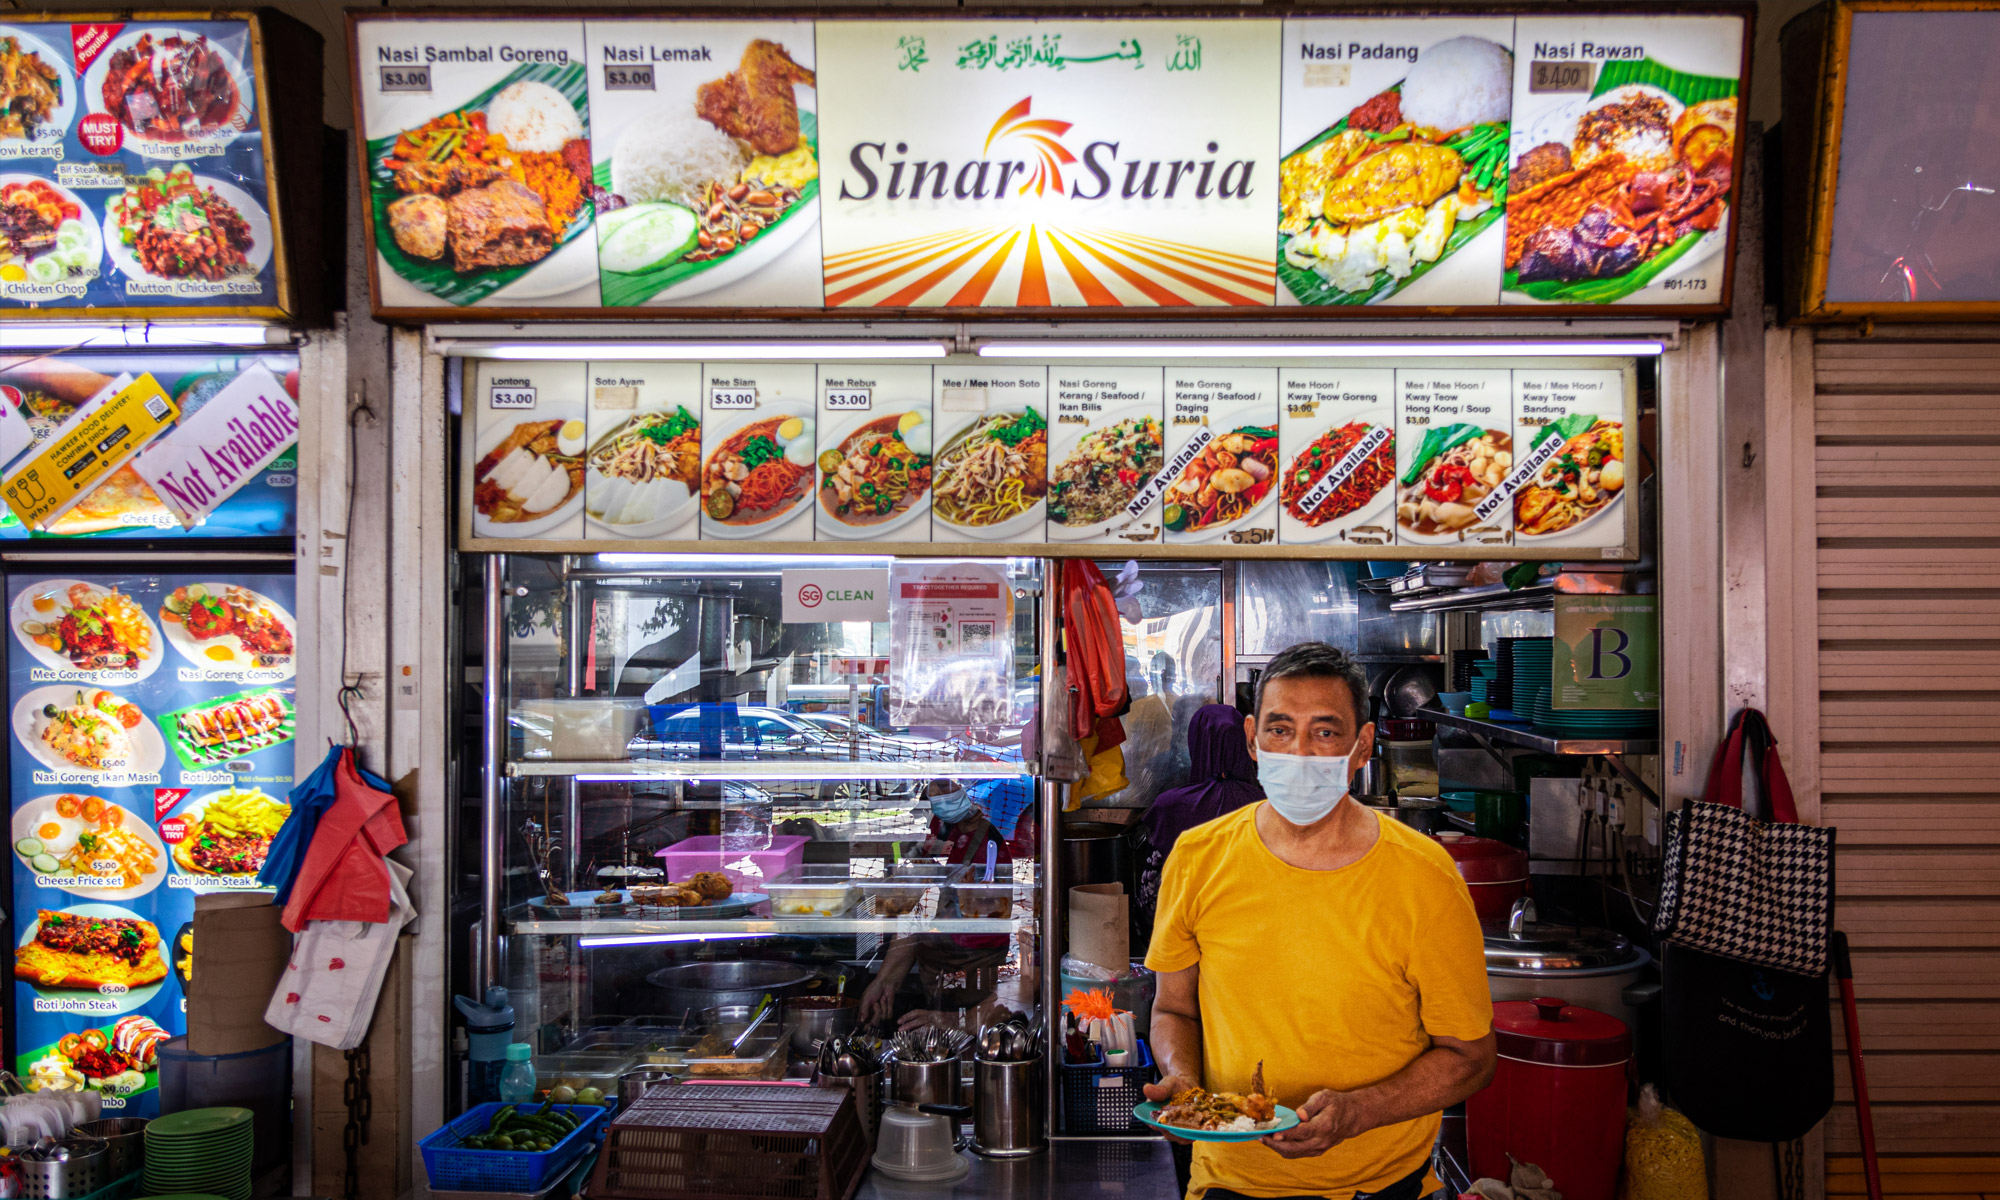 Owner of Sinar Suria, available on WhyQ for delivery.